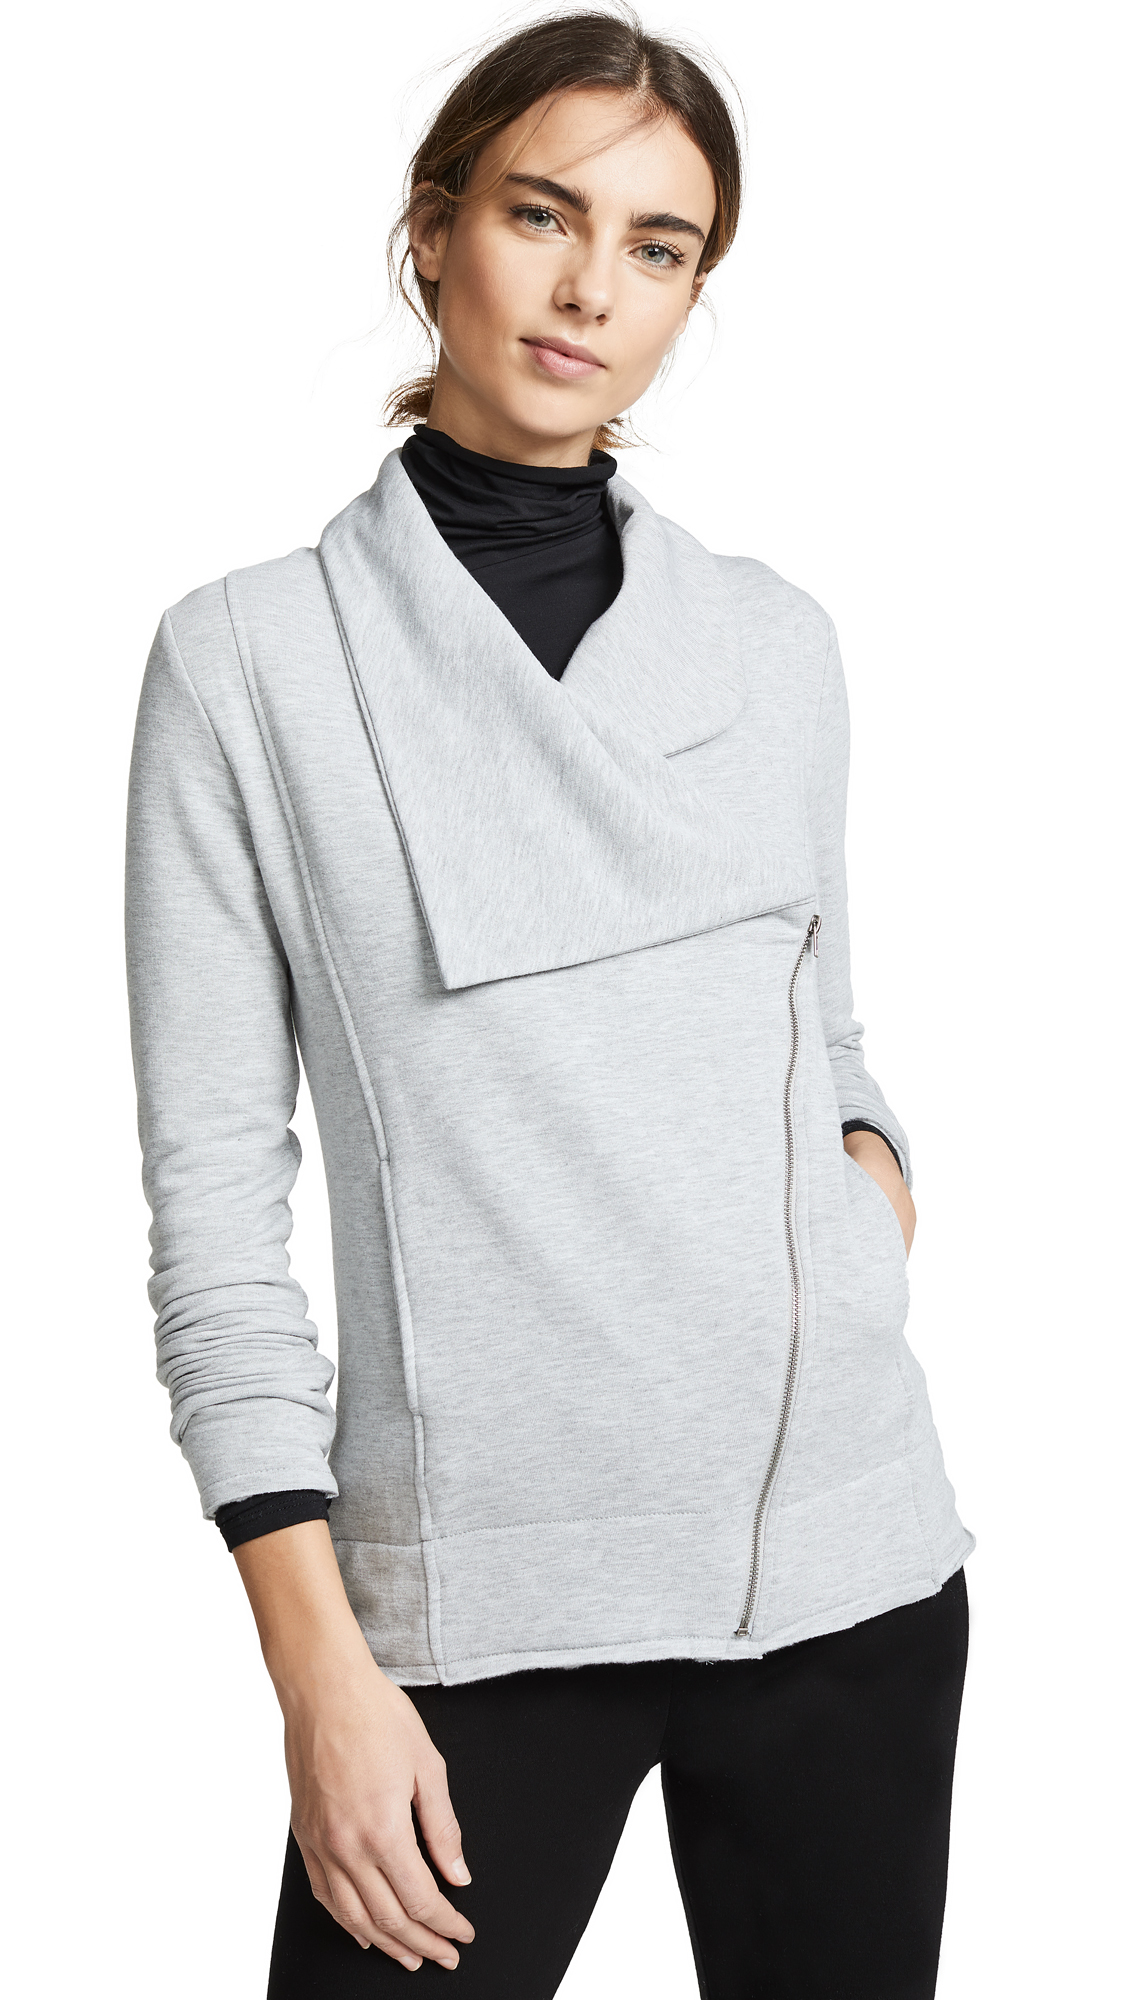 Z SUPPLY The Feathered Fleece Jacket in Heather Grey